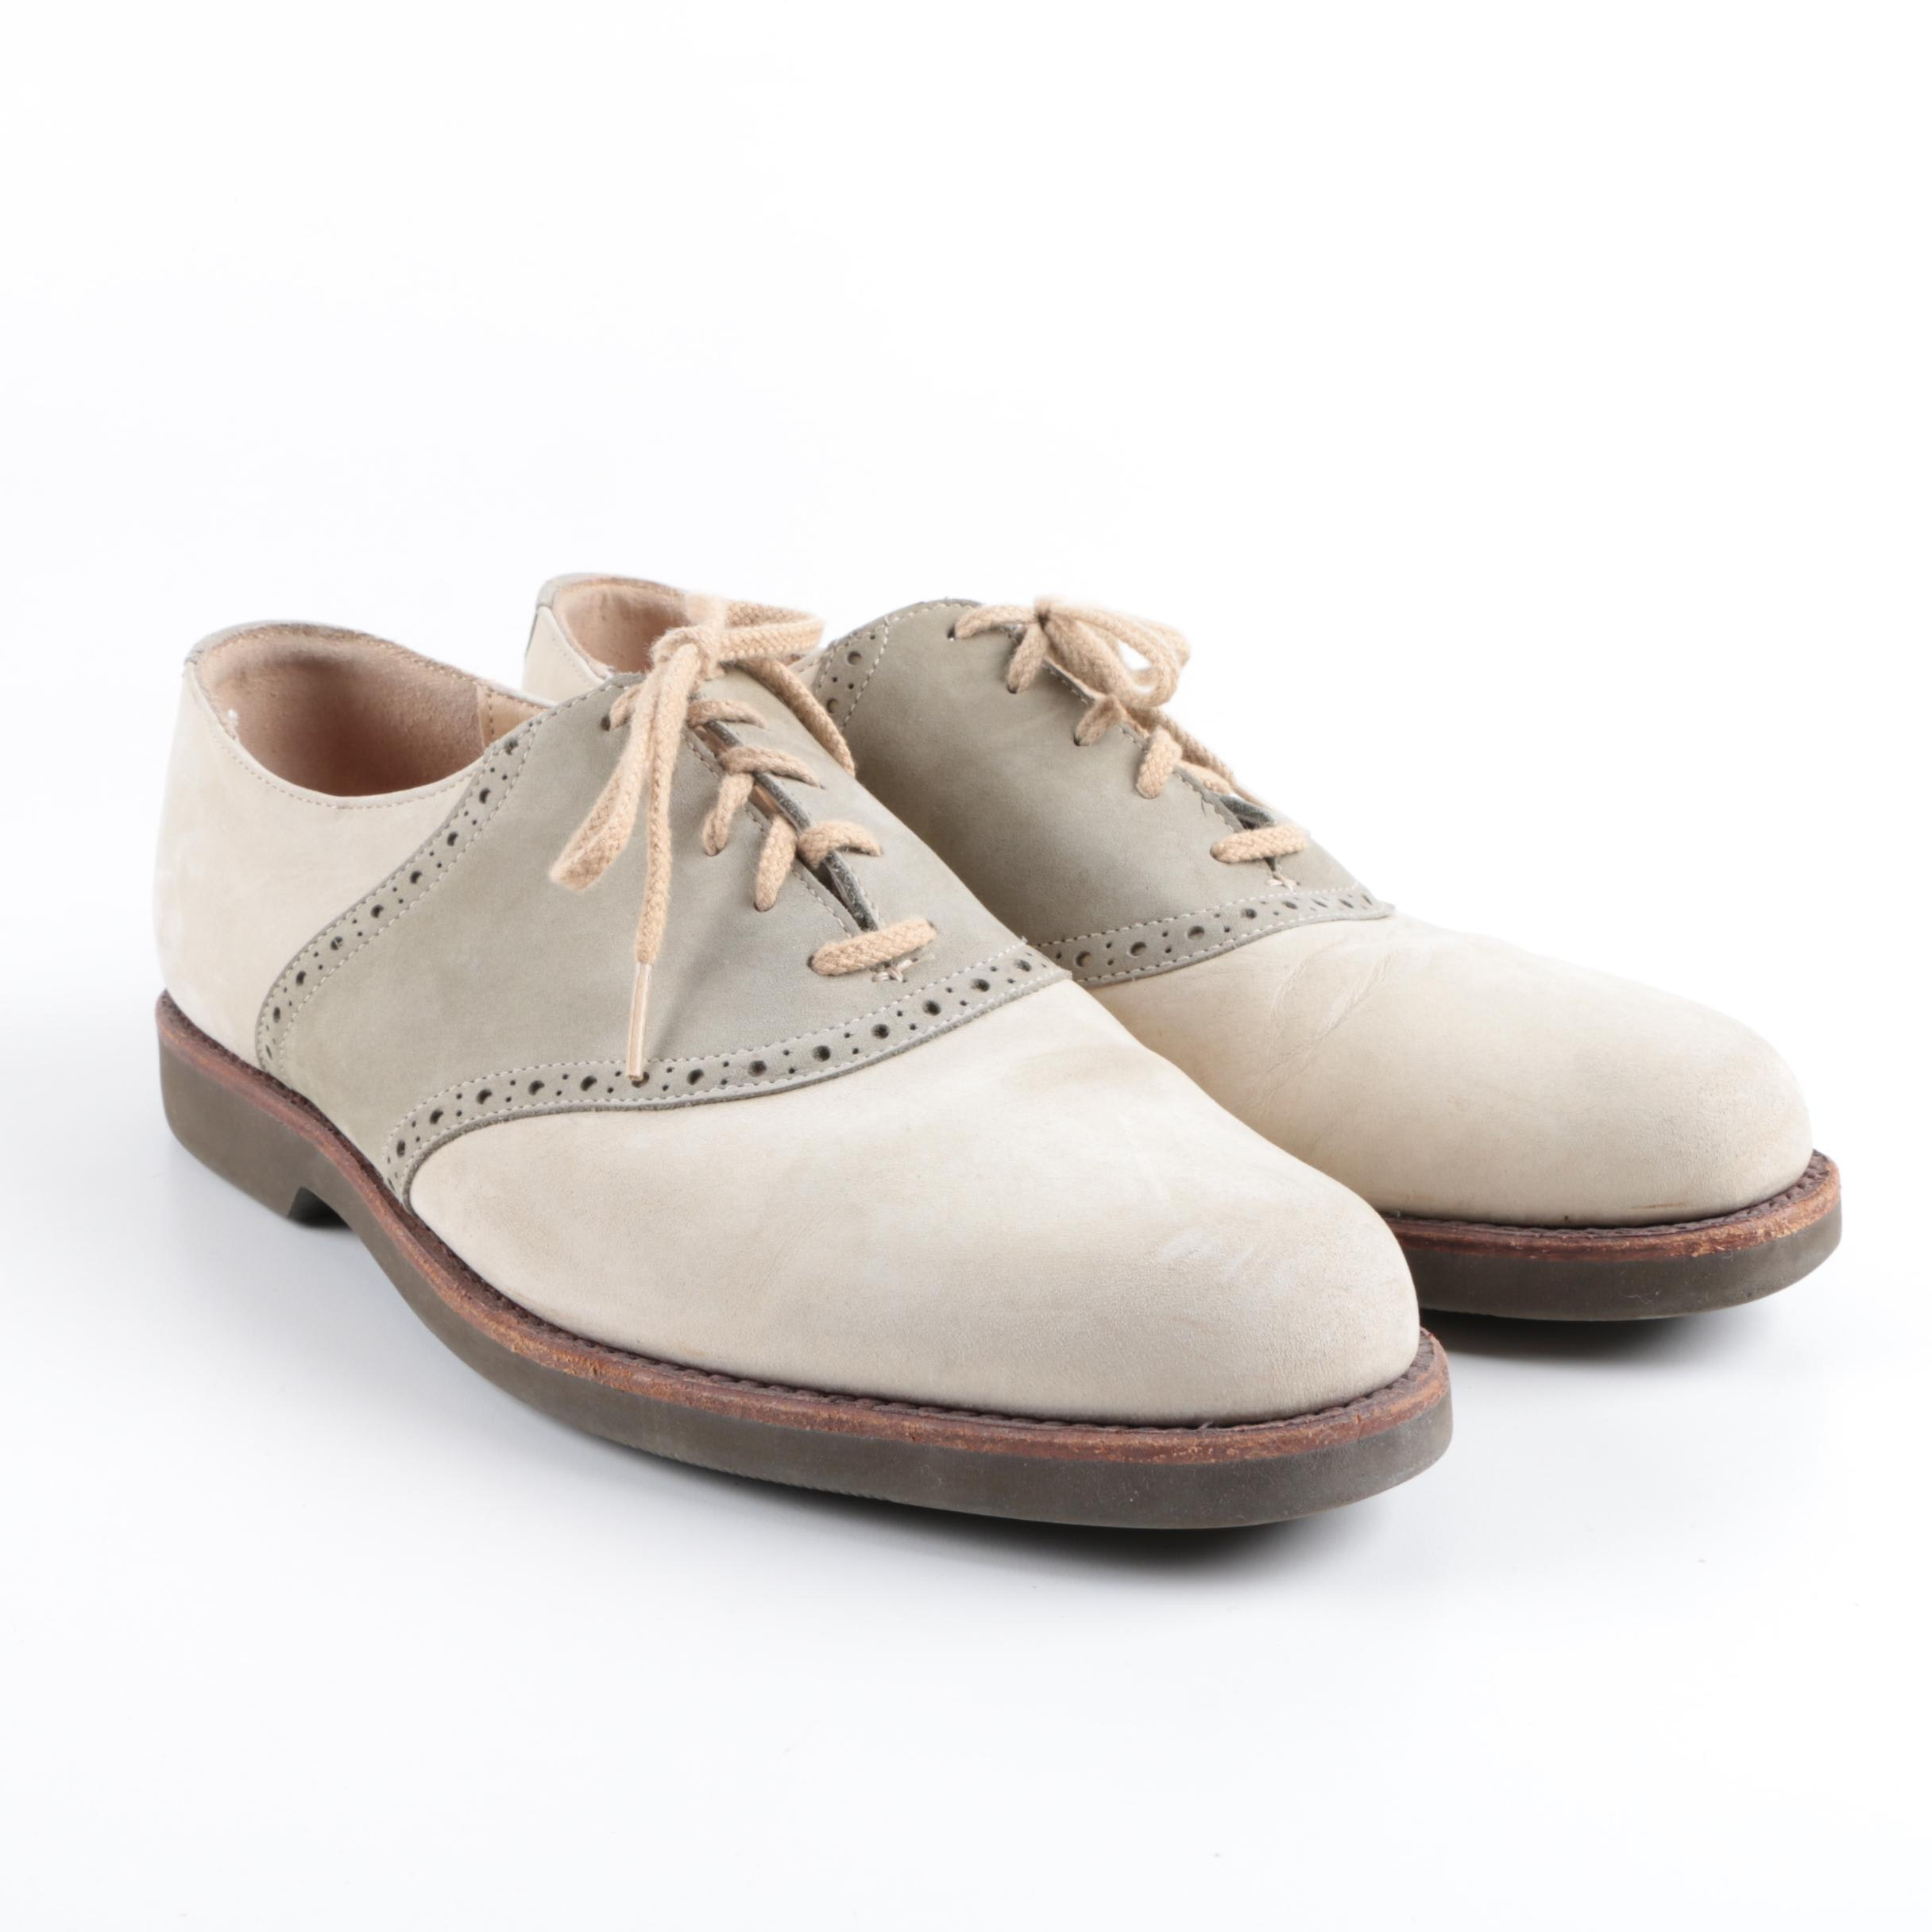 Men's Cole Haan Taupe and Grey Nubuck Oxfords